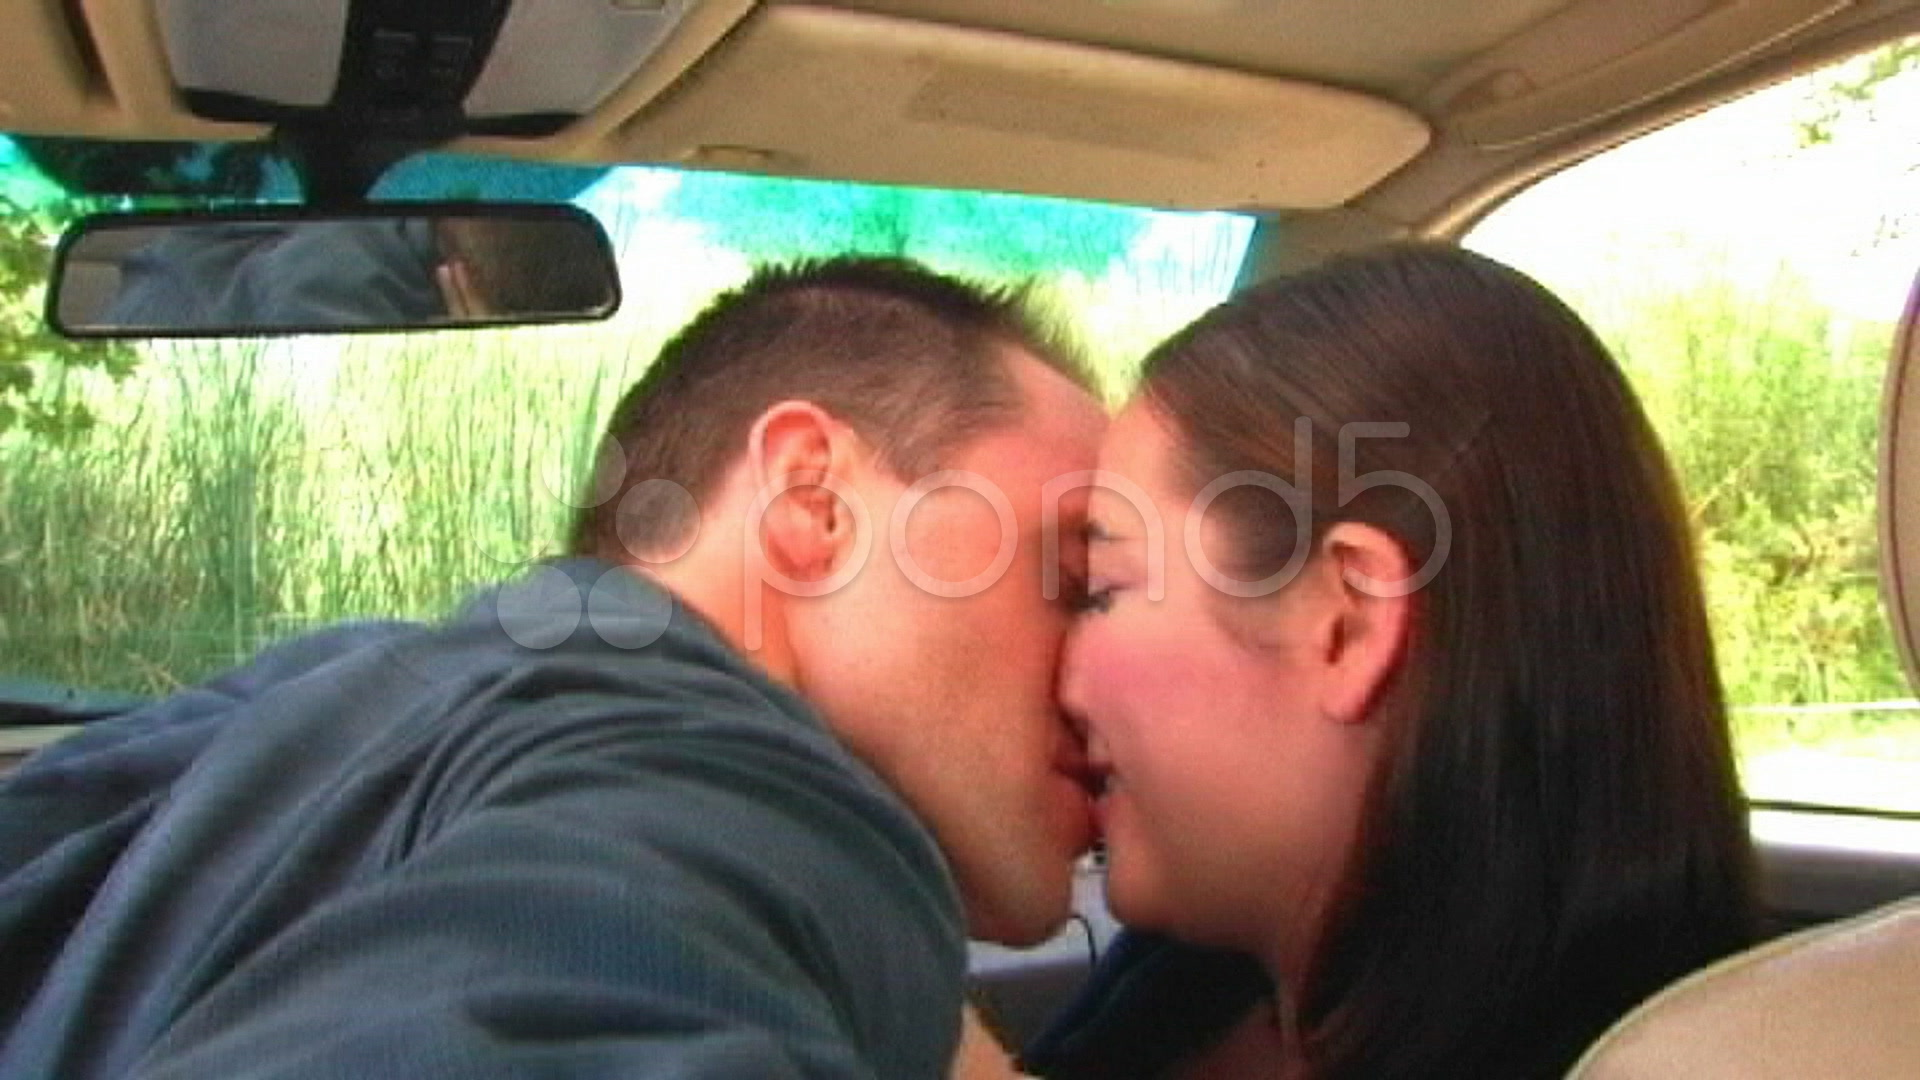 young couple making out in car 2 videos 8517097 hd stock footage. Black Bedroom Furniture Sets. Home Design Ideas